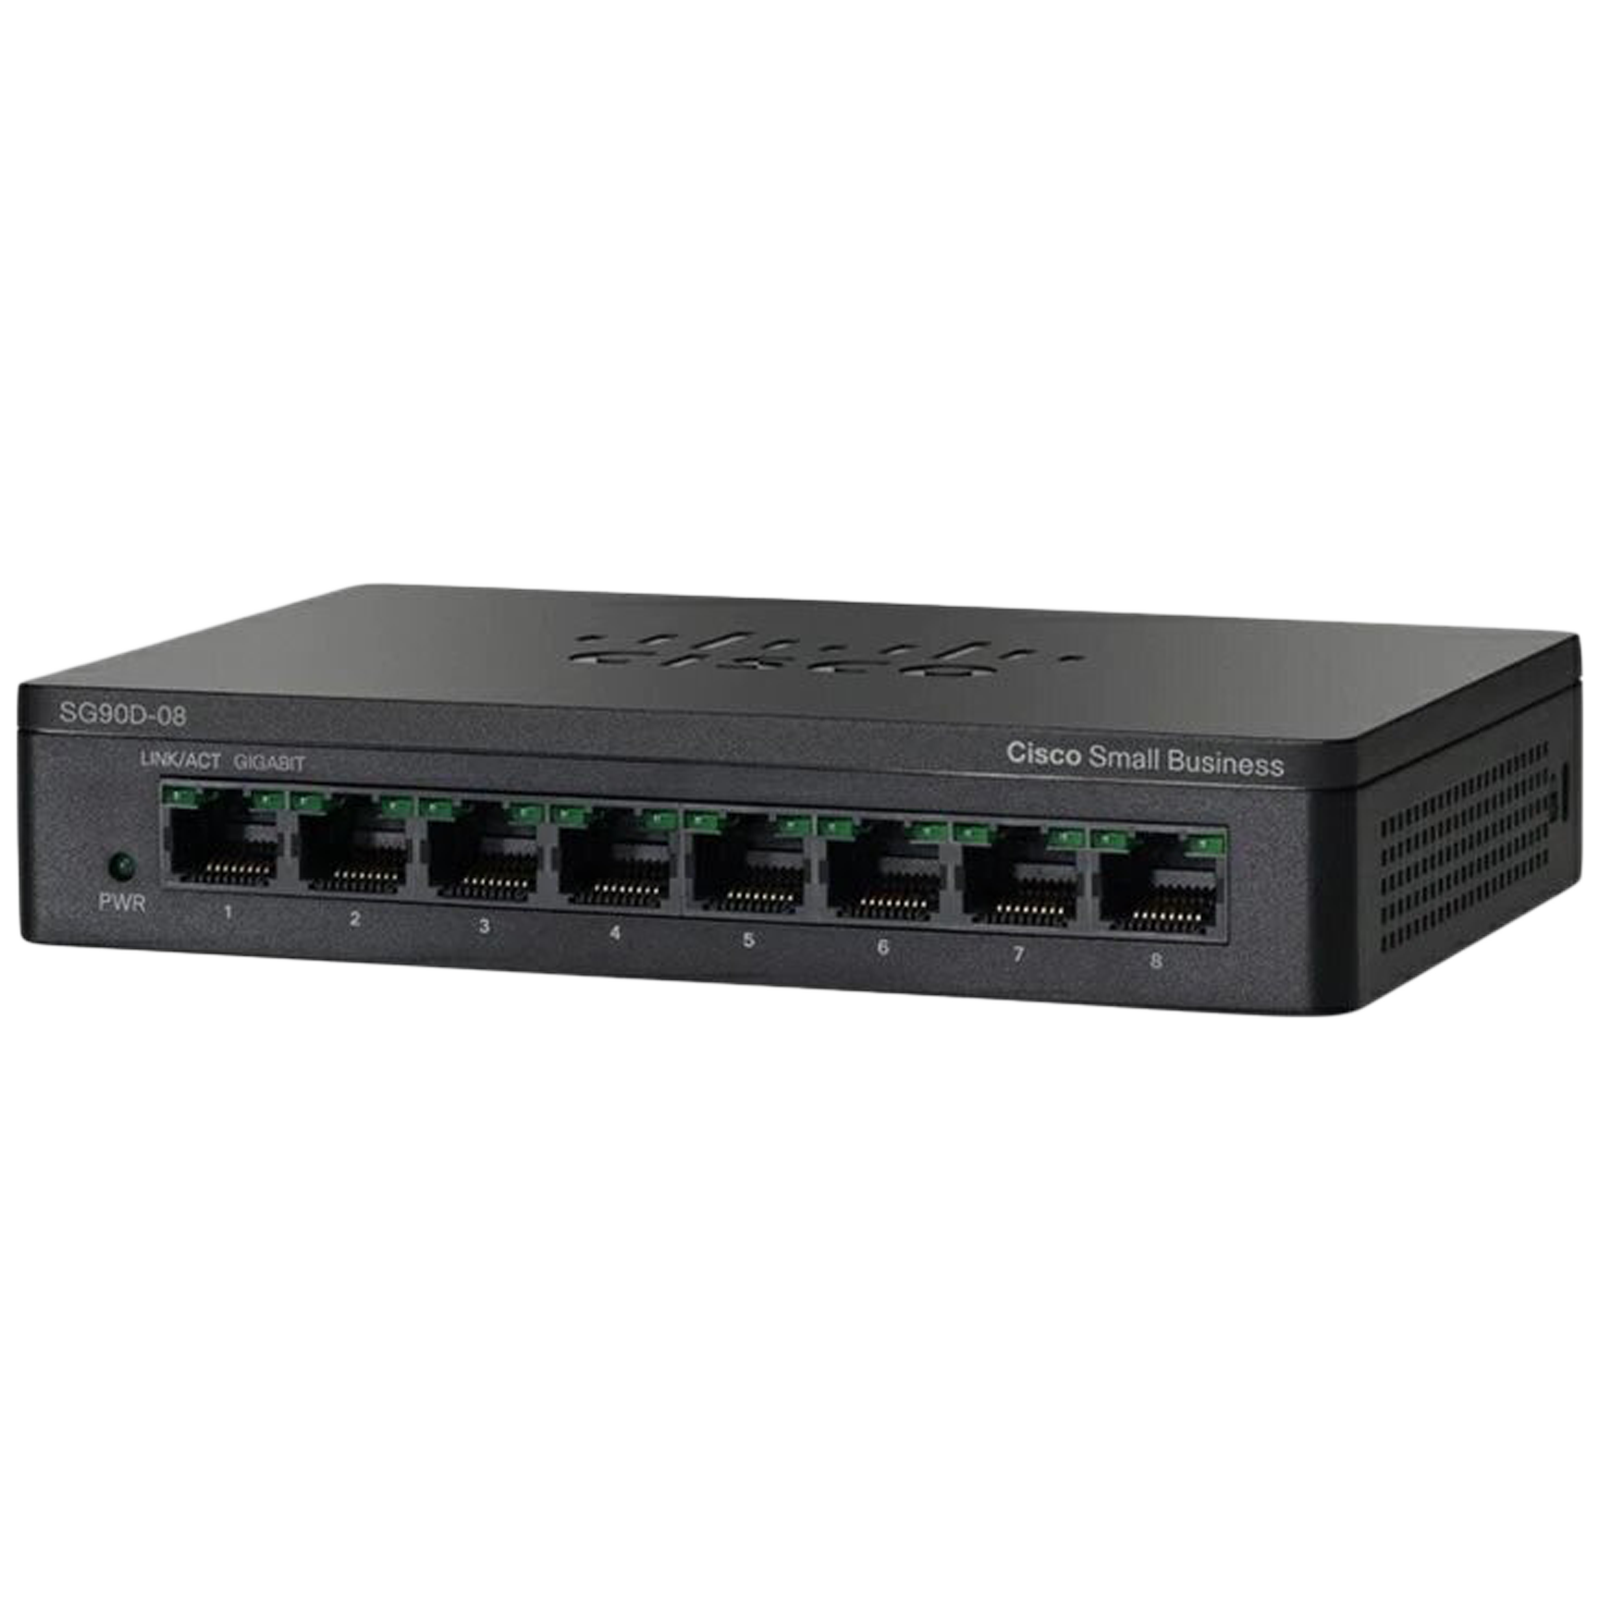 Cisco 8 Ports Unmanaged Switch (No Antennas, Loop Detection, SG95D-08-IN, Black)_1